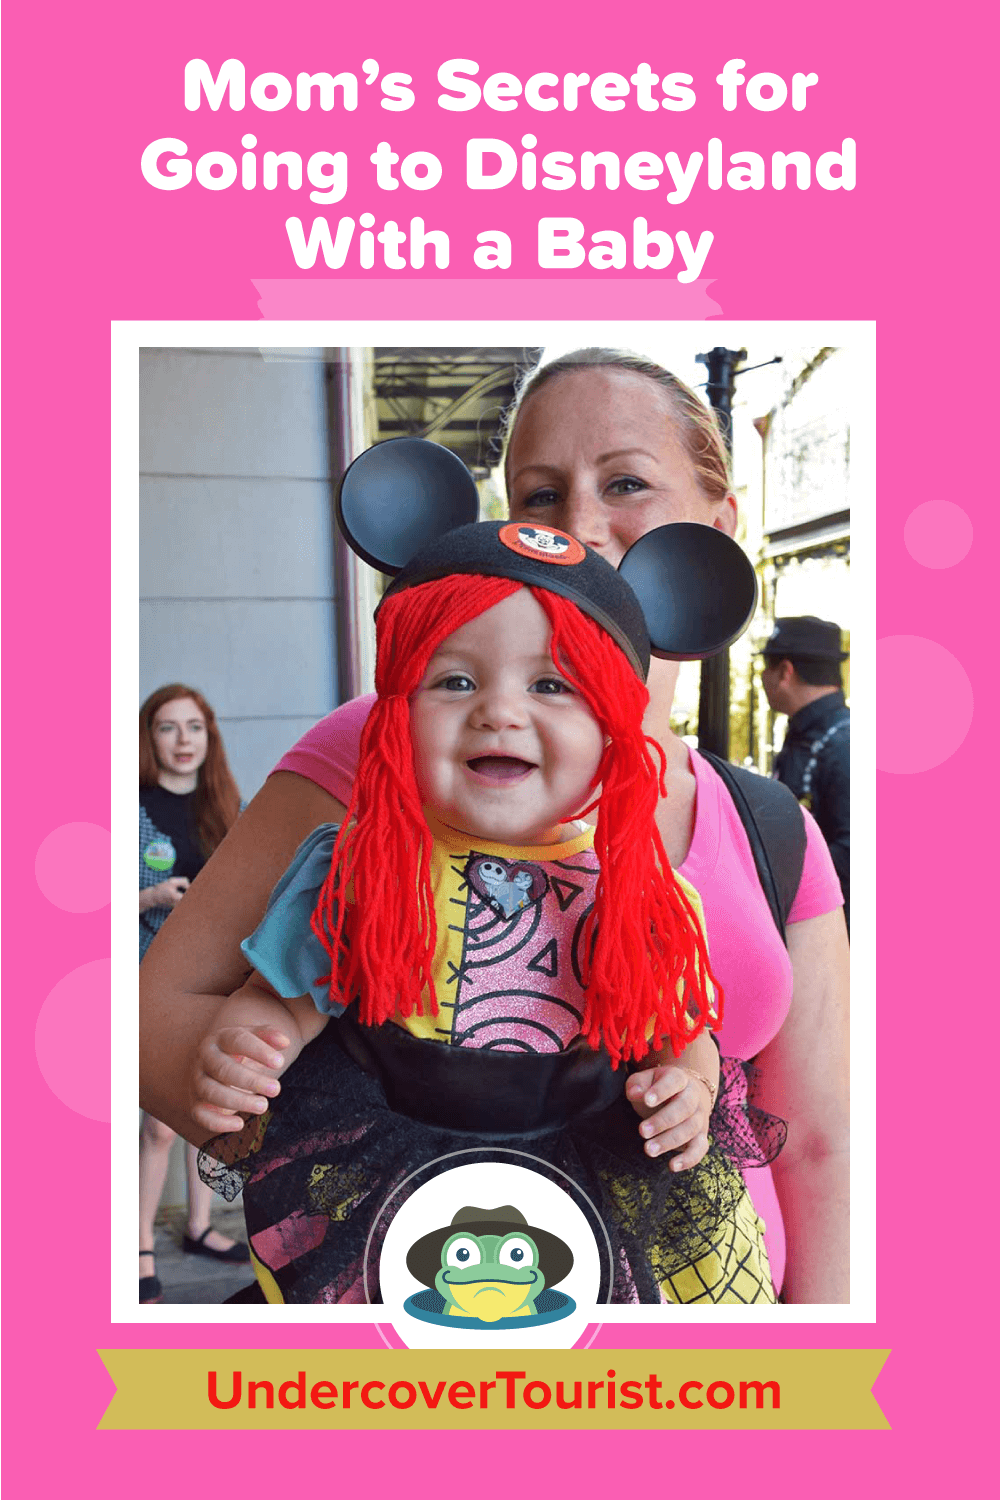 White Elephant Gift Ideas 2020 Pinterest Mom's Secrets for Going to Disneyland with a Baby